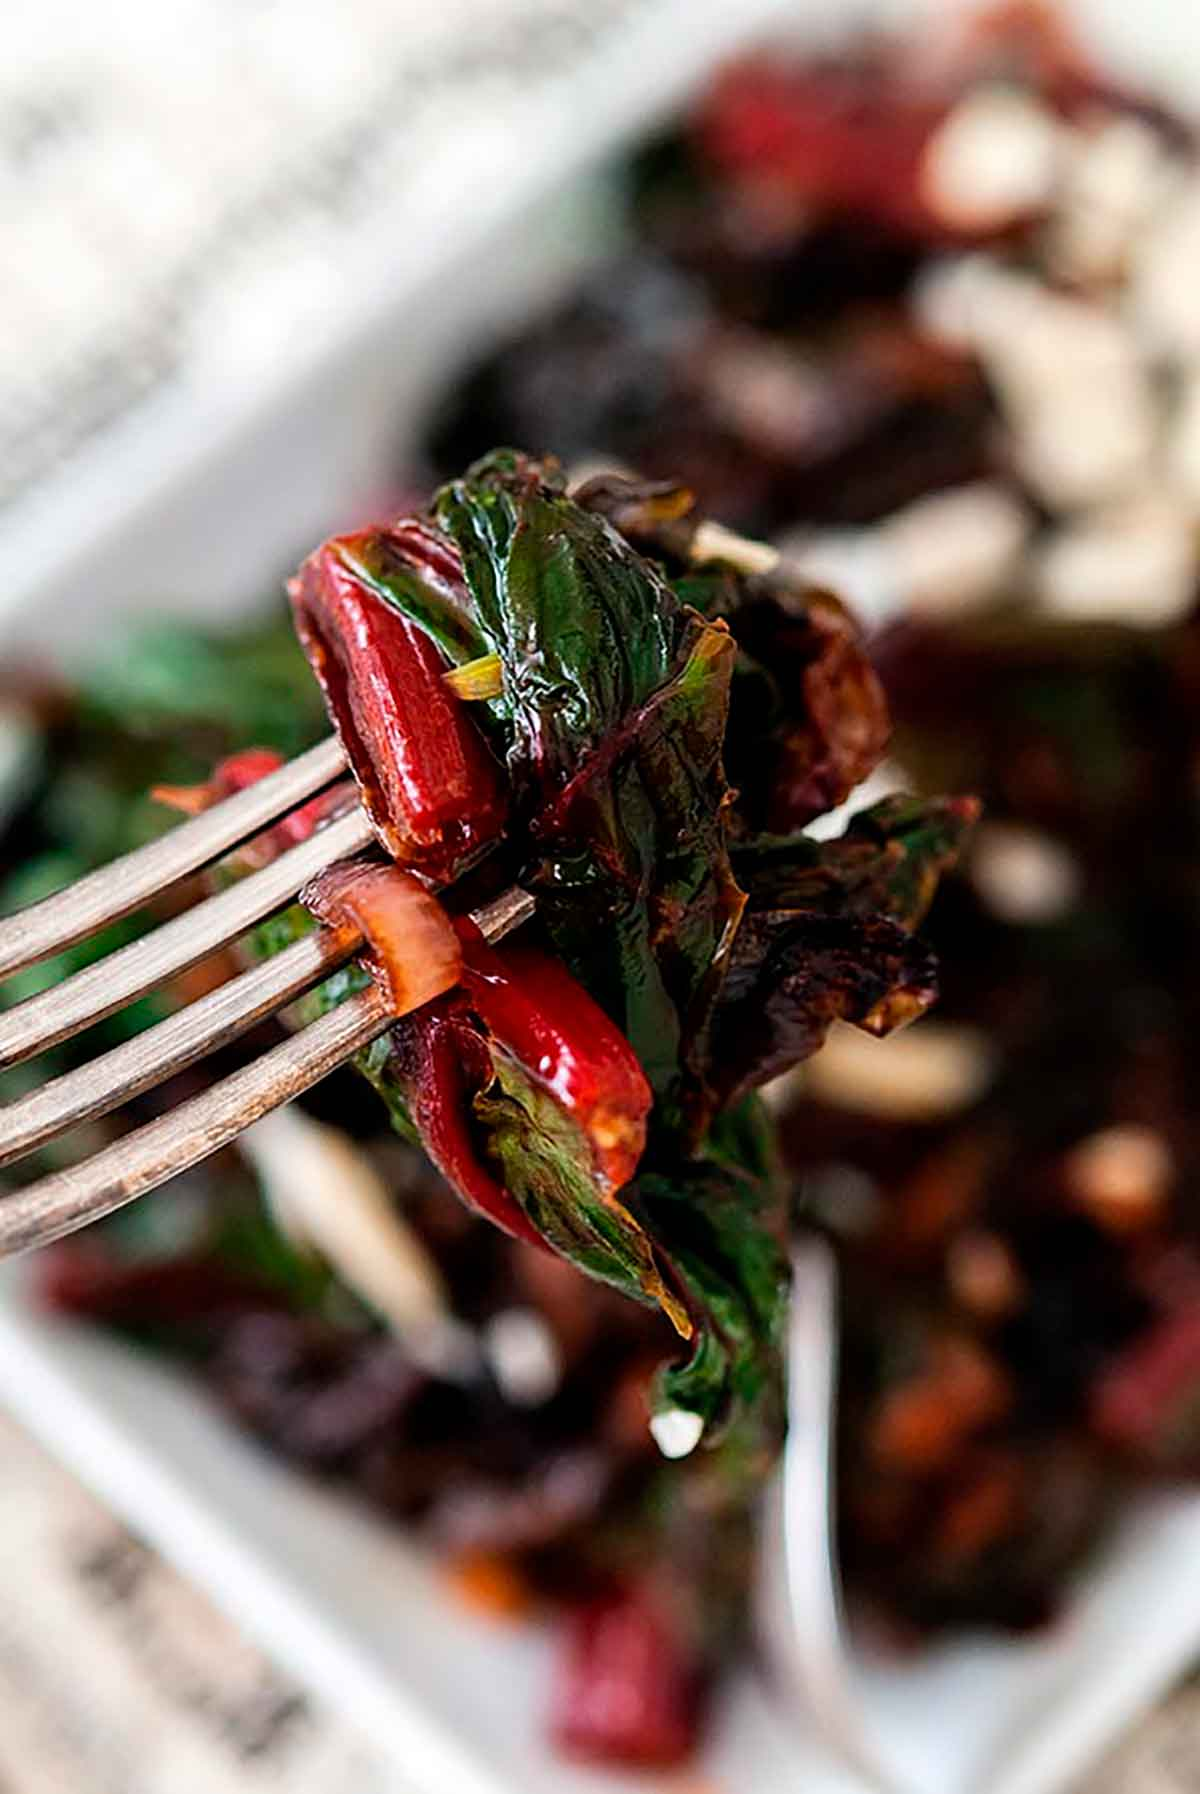 A fork with sautéd Swiss chard and caramelized shallots above a bowl of Swiss chard.